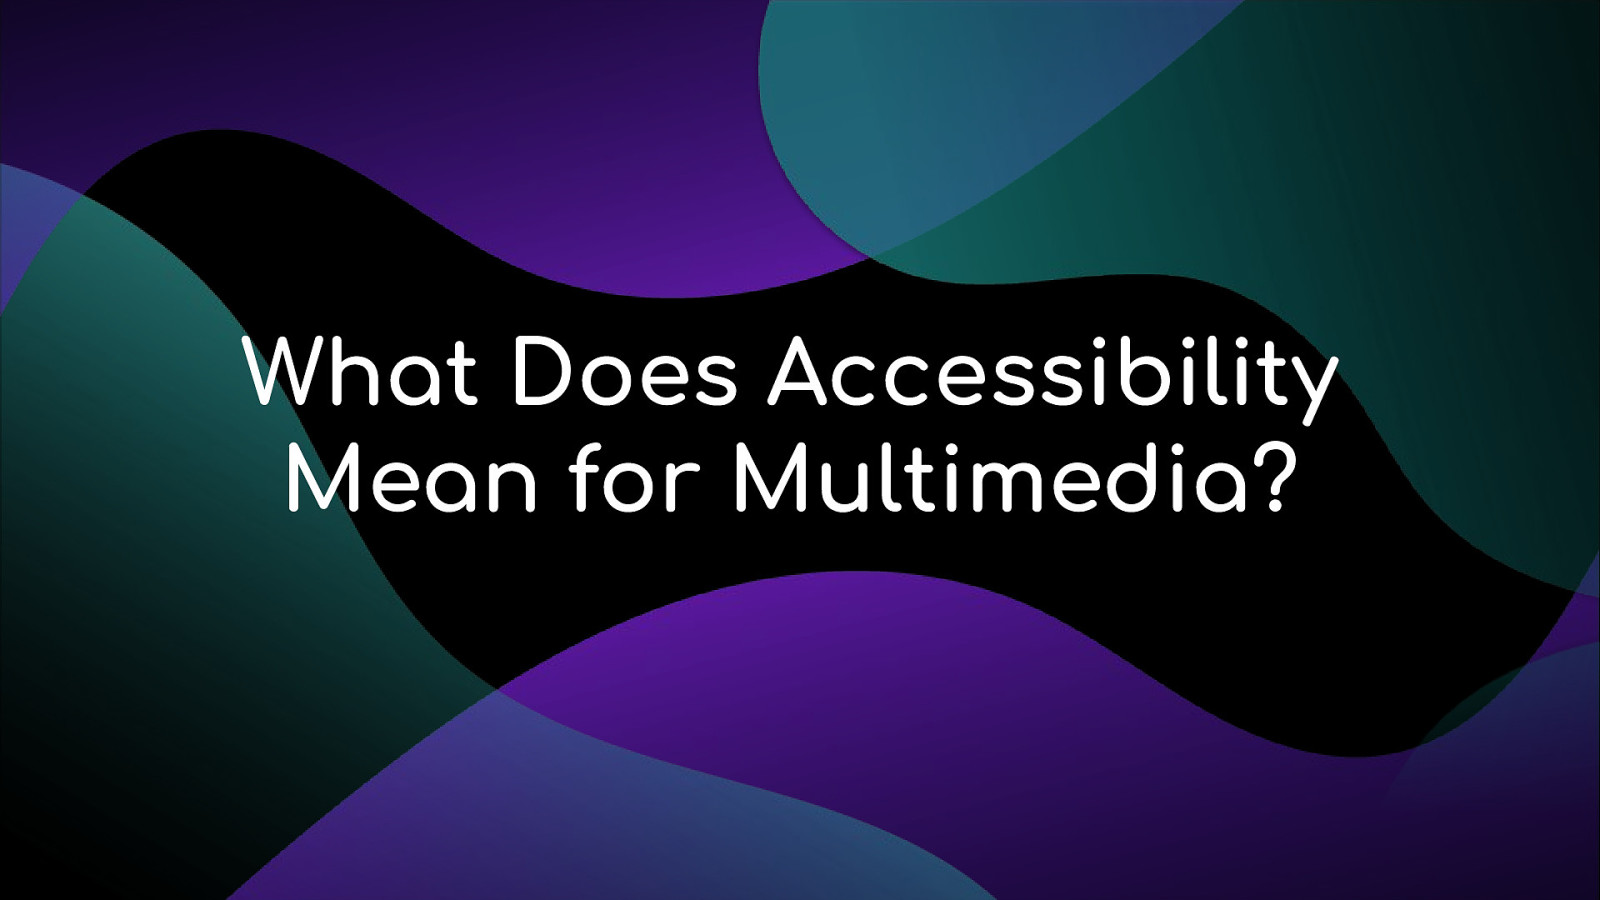 What Does Accessibility Mean for Multimedia?